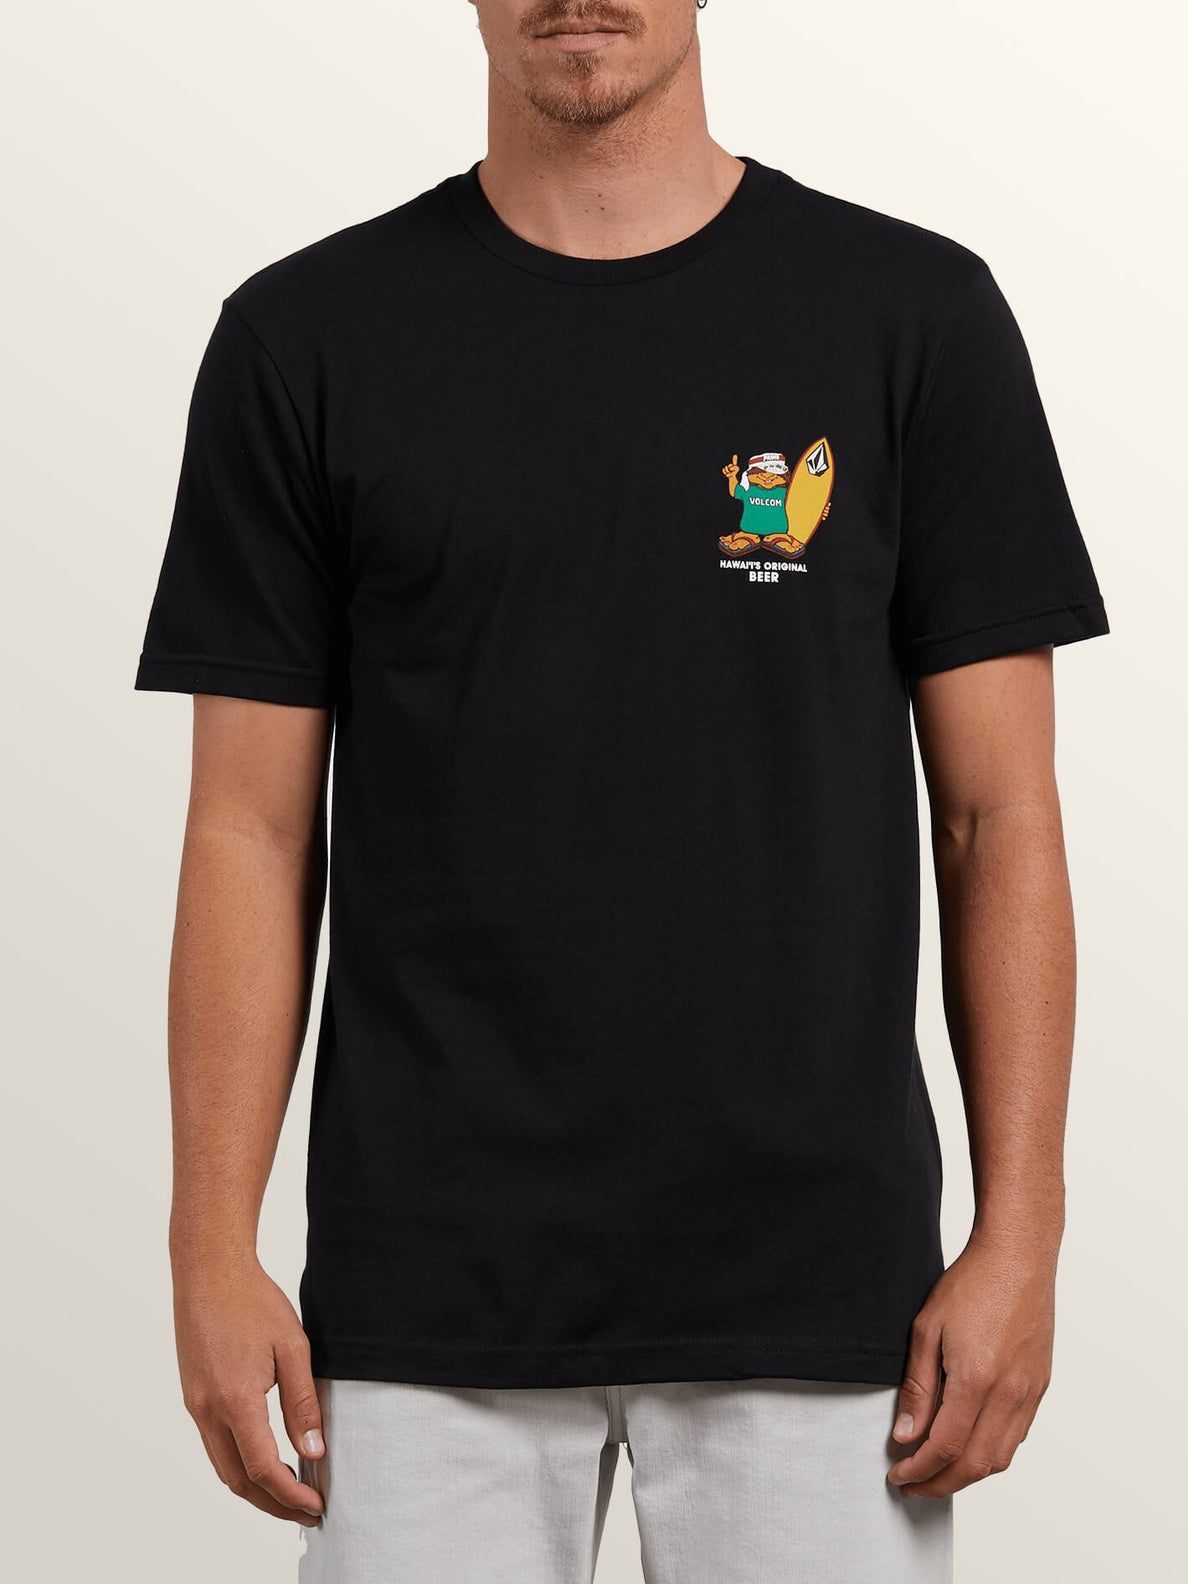 Primo Chance Short Sleeve Tee In Black, Front View